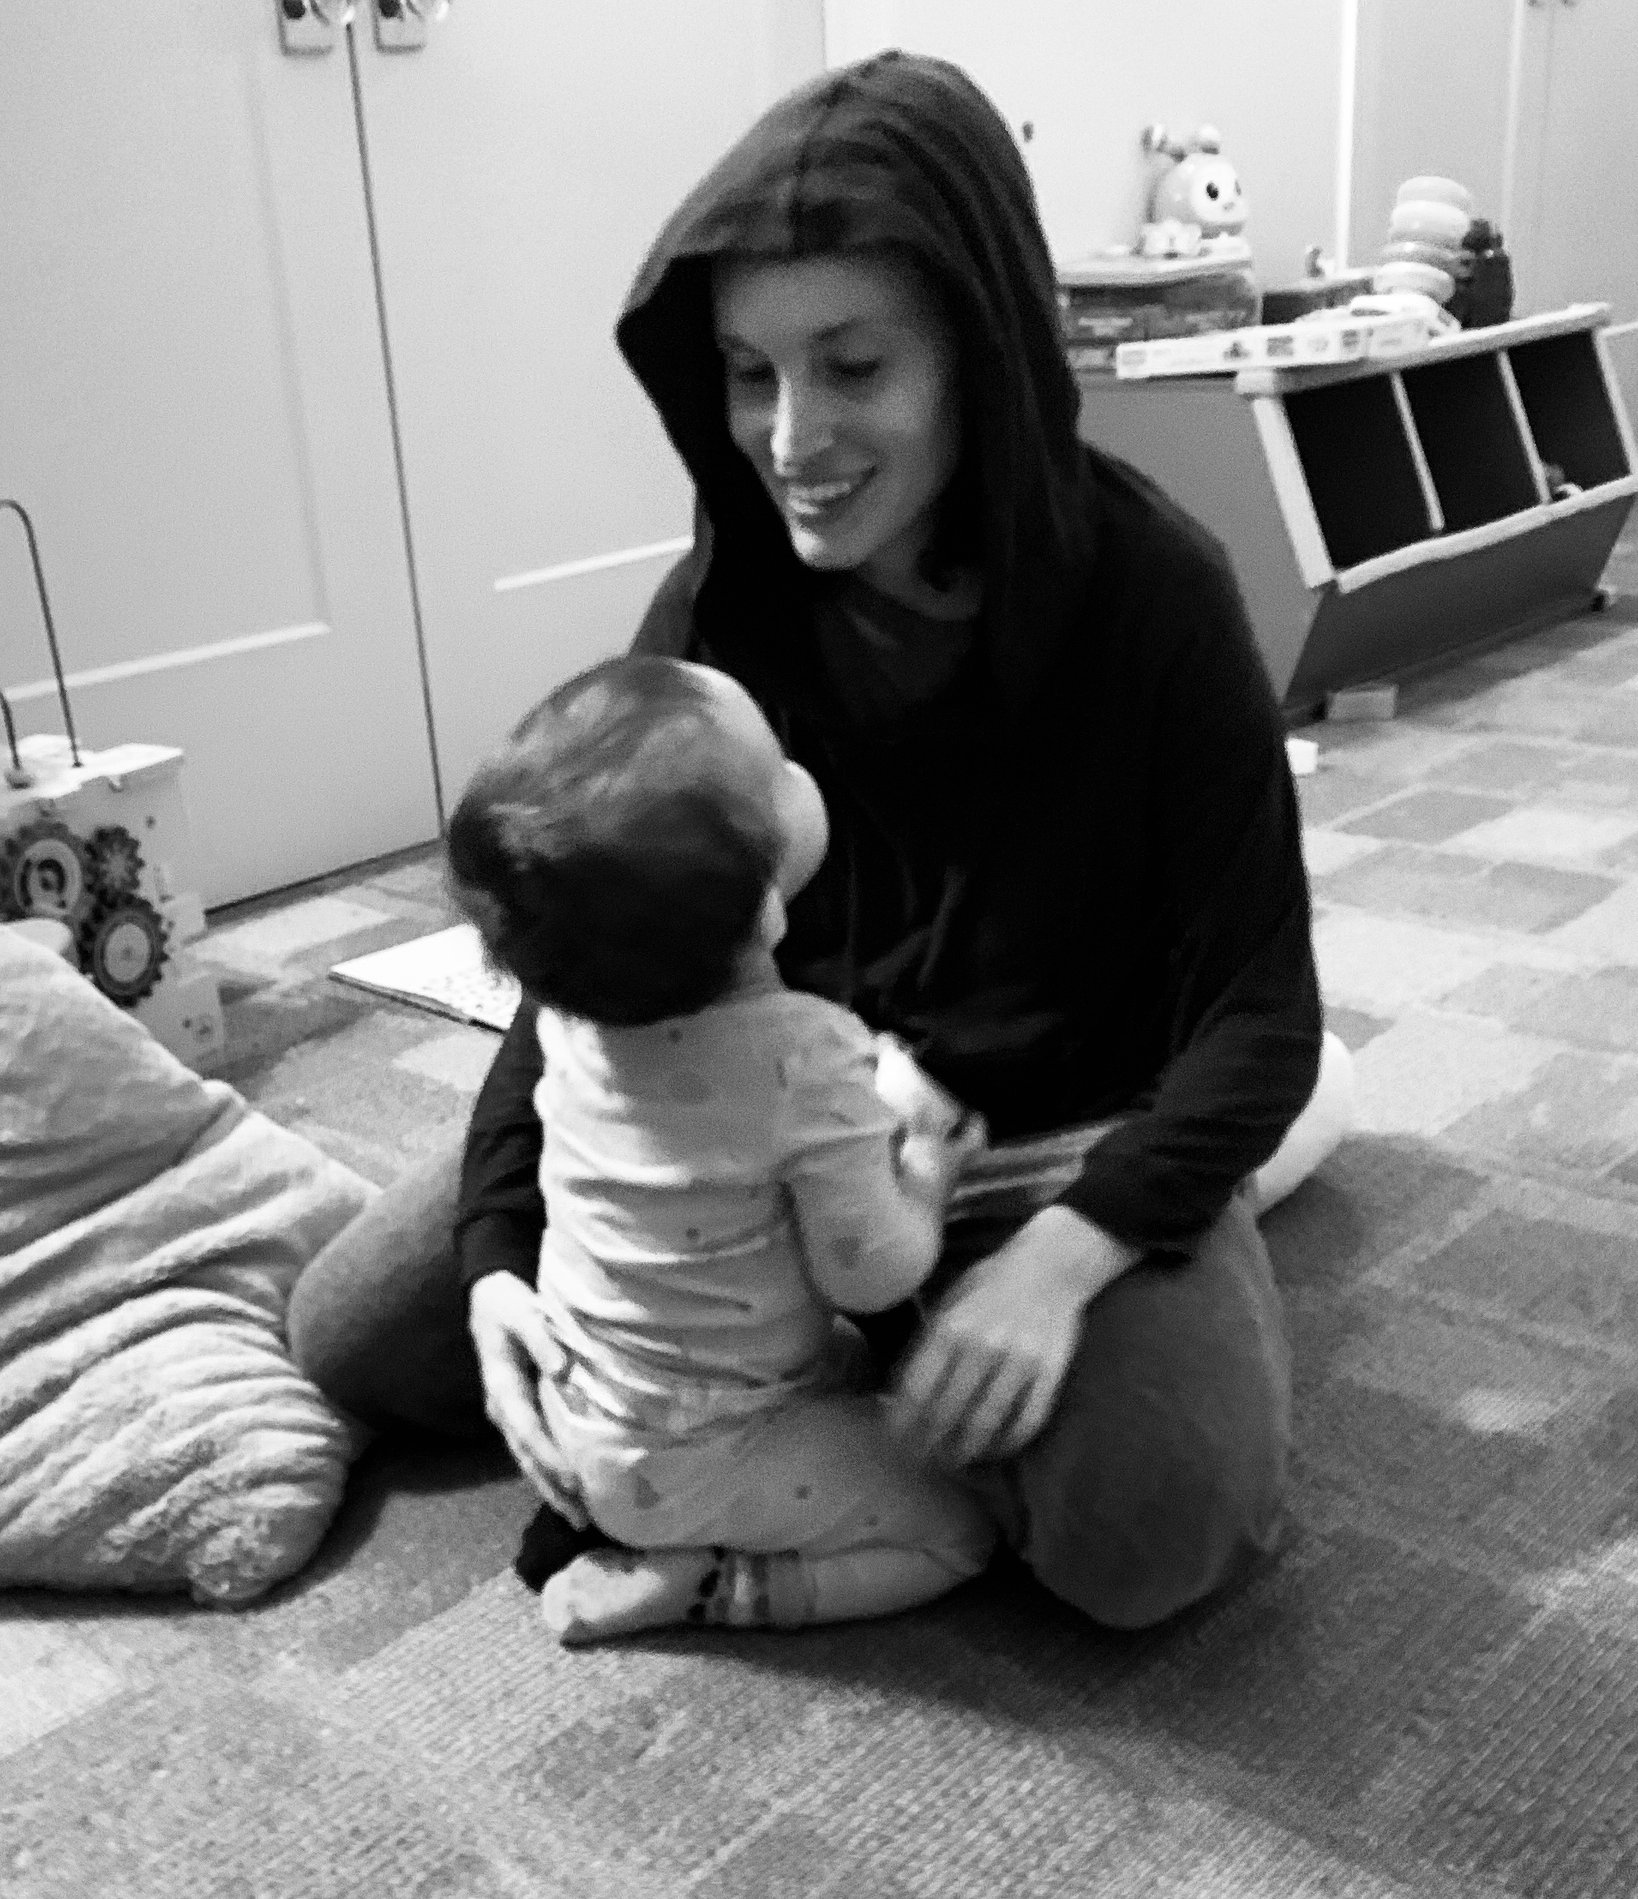 Sweet Moments in the Chaos of Motherhood Make it All Worth it www.herviewfromhome.com